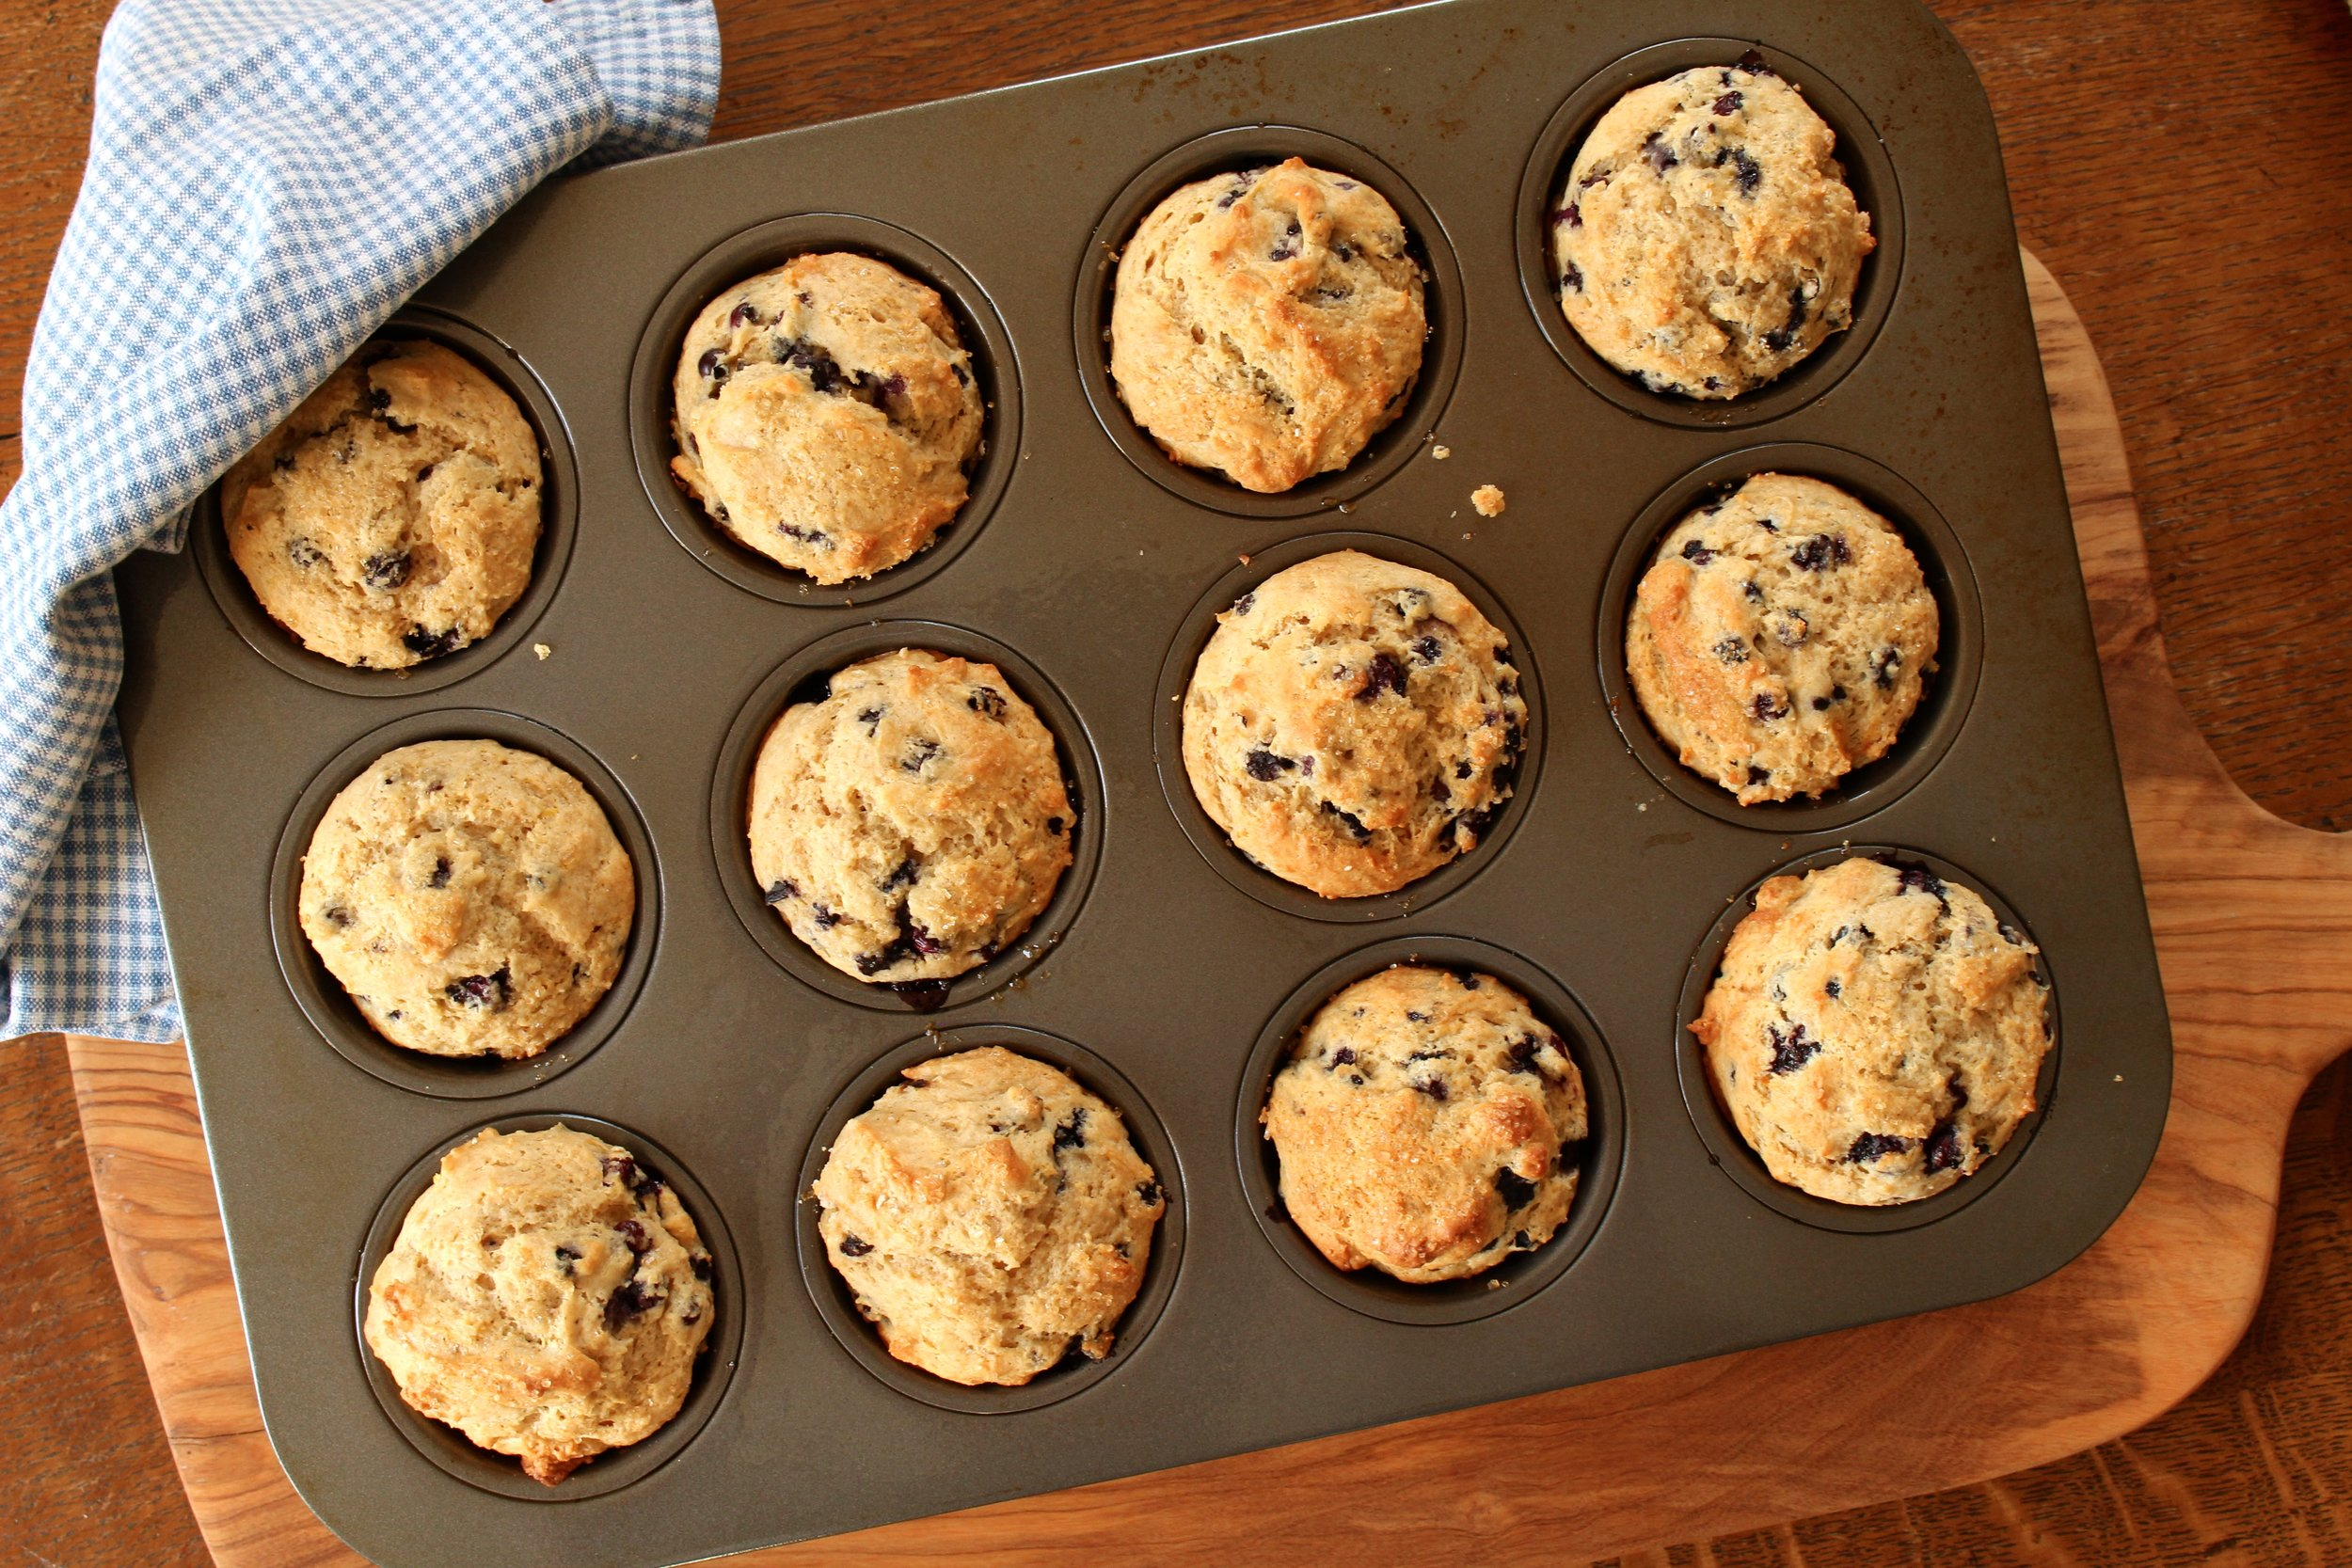 Wild Maine blueberry muffins